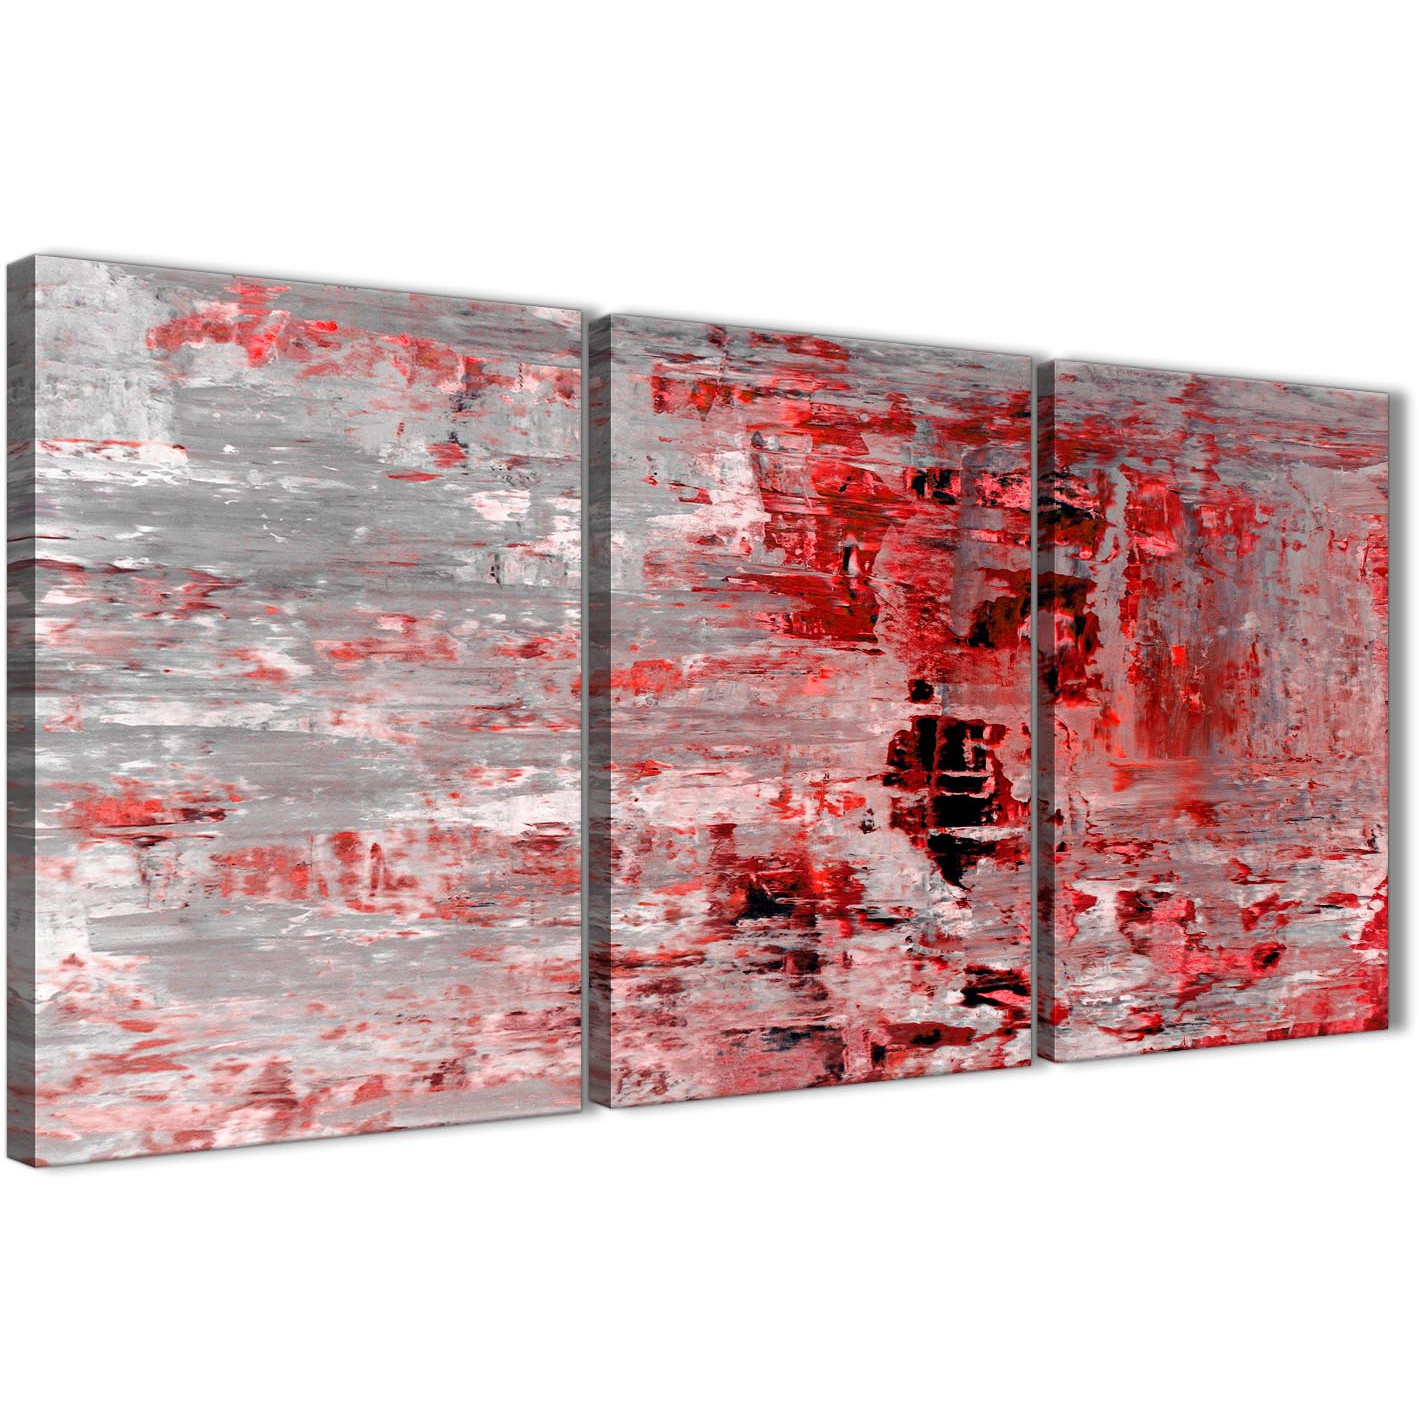 Next Set Of 3 Panel Red Grey Painting Kitchen Canvas Wall Art Accessories    Abstract 3414 Display Gallery Item 1 ...